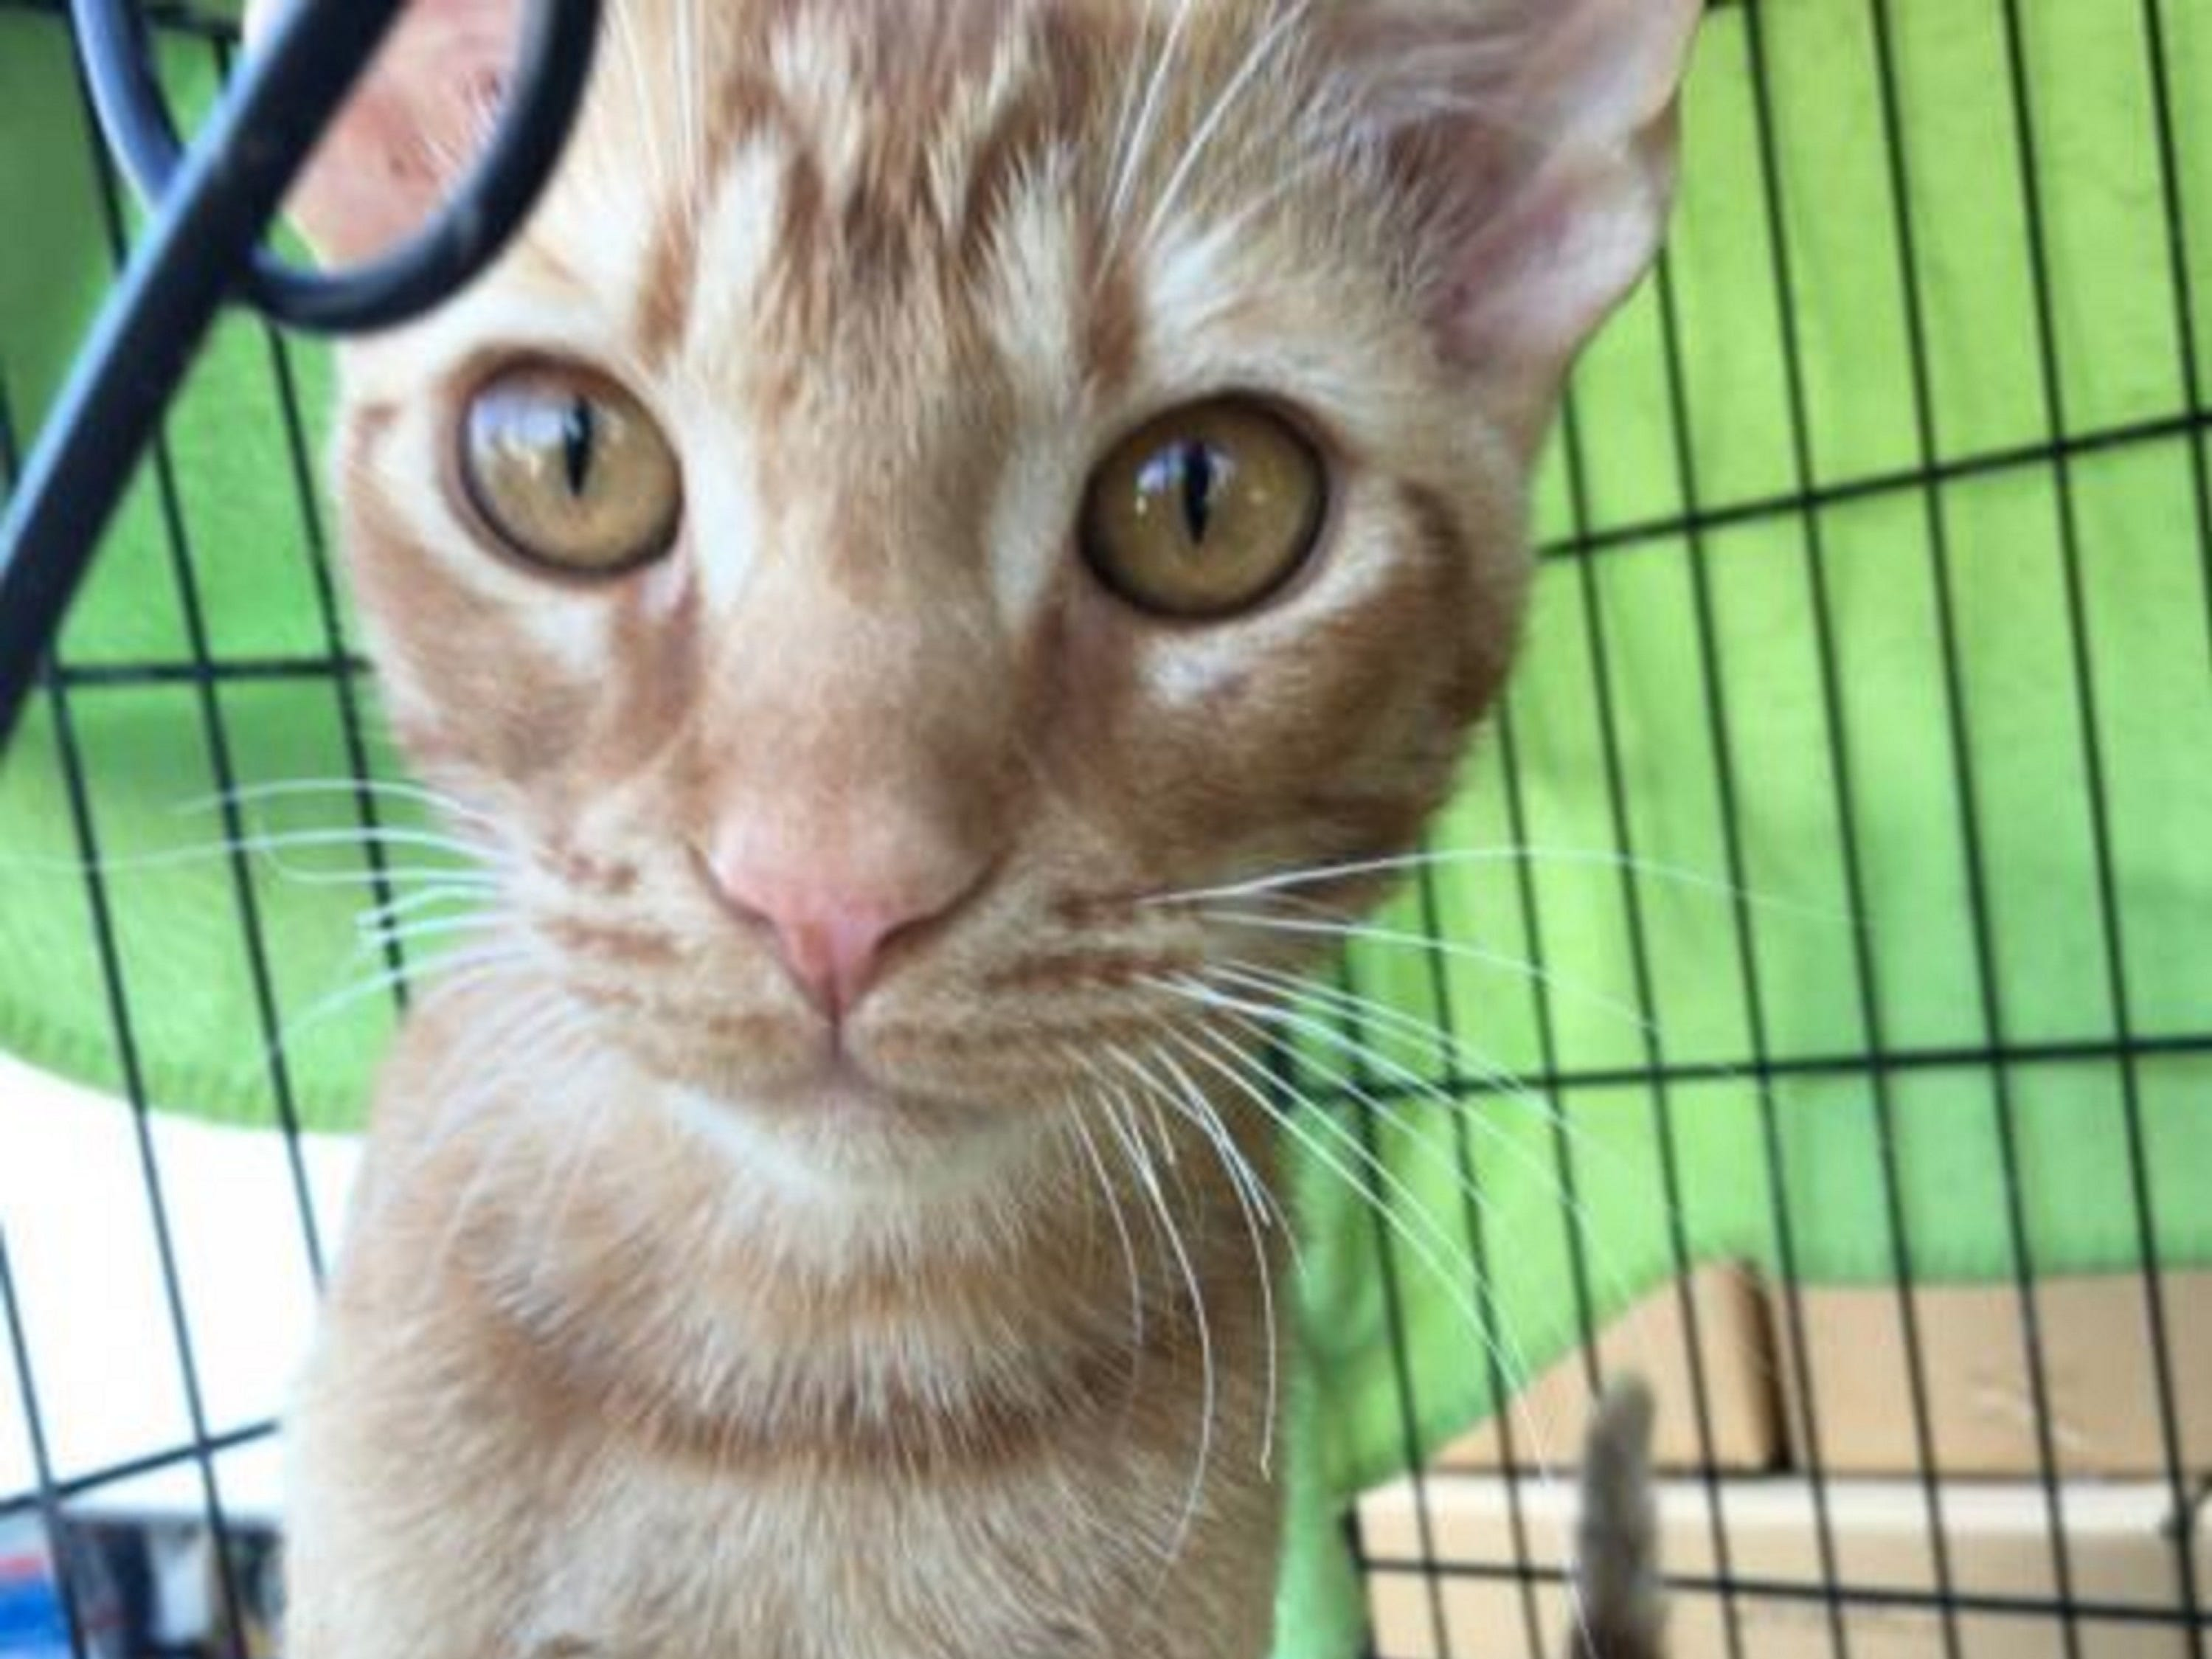 Cypress is sweet, outgoing, 6-month-old male kitten. He can be independent, but loves attention and likes to play. Cypress is very inquisitive but will need time to adjust to a new home. Raining Cats N Dogs adoptions include spay/neuter services, vaccines and vetting as needed. Call 232-6299. Go to http://rainingcatsndogs.rescuegroups.org.